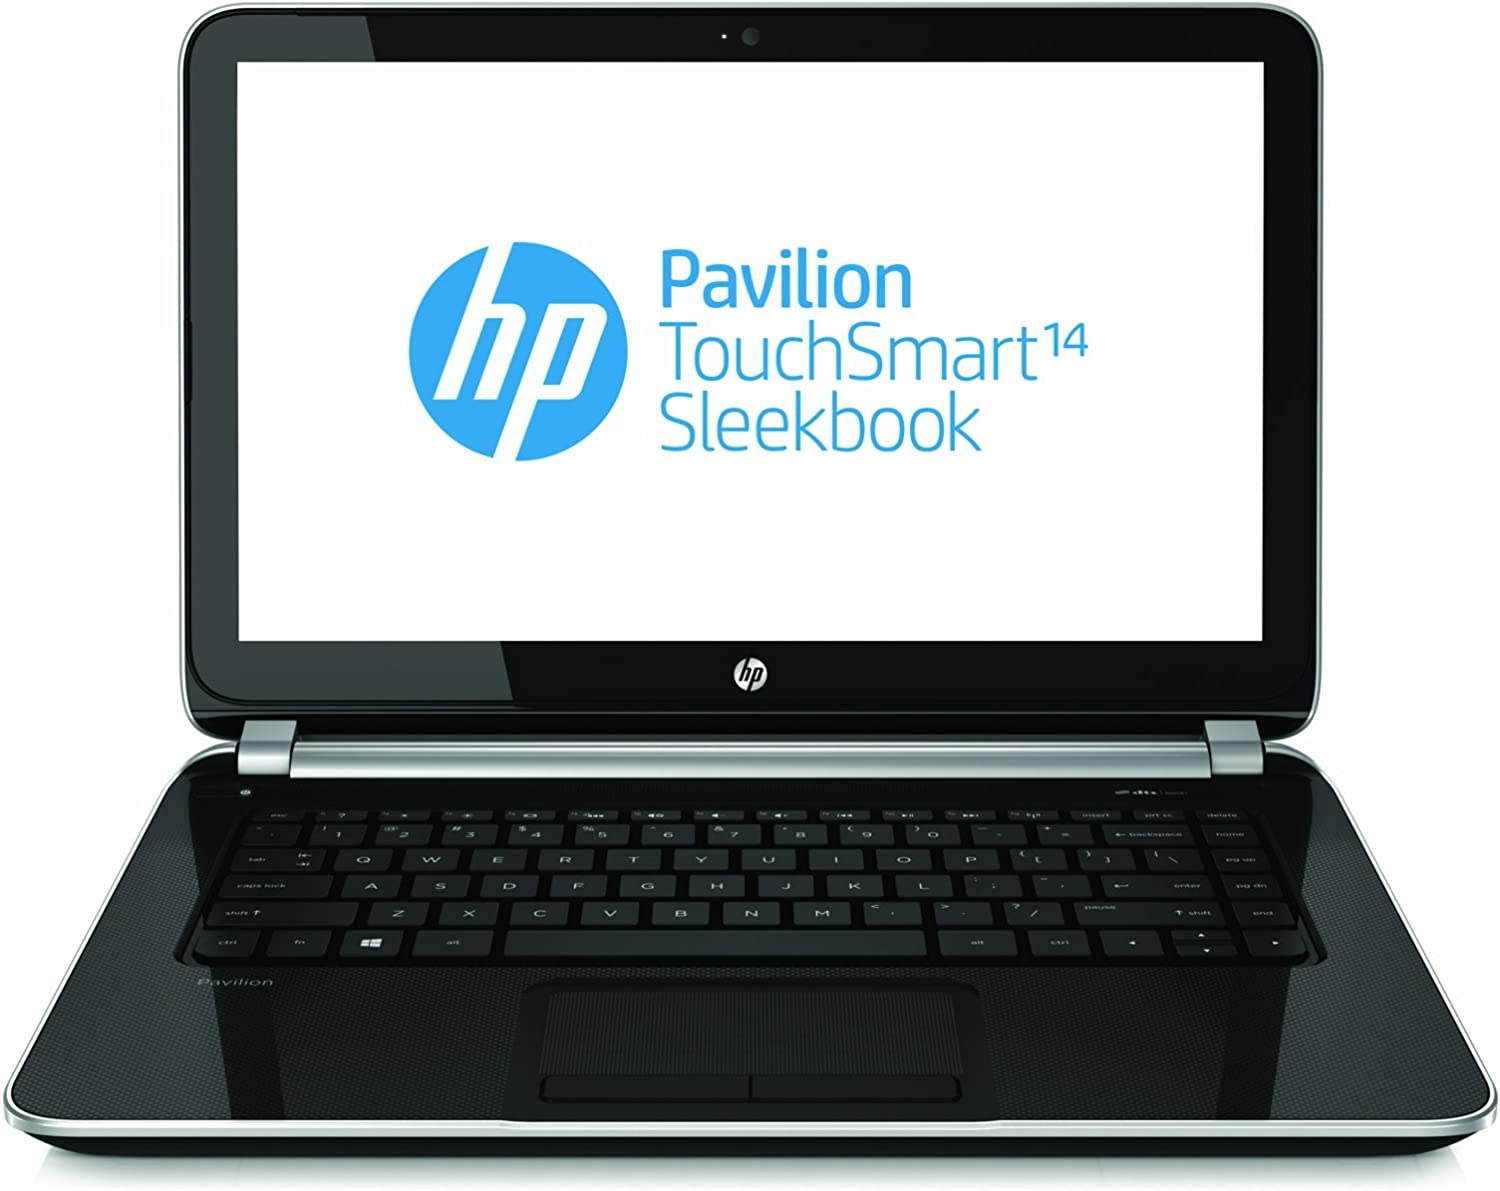 HP Pavilion 14-f020us 14-Inch Touchscreen Sleekbook